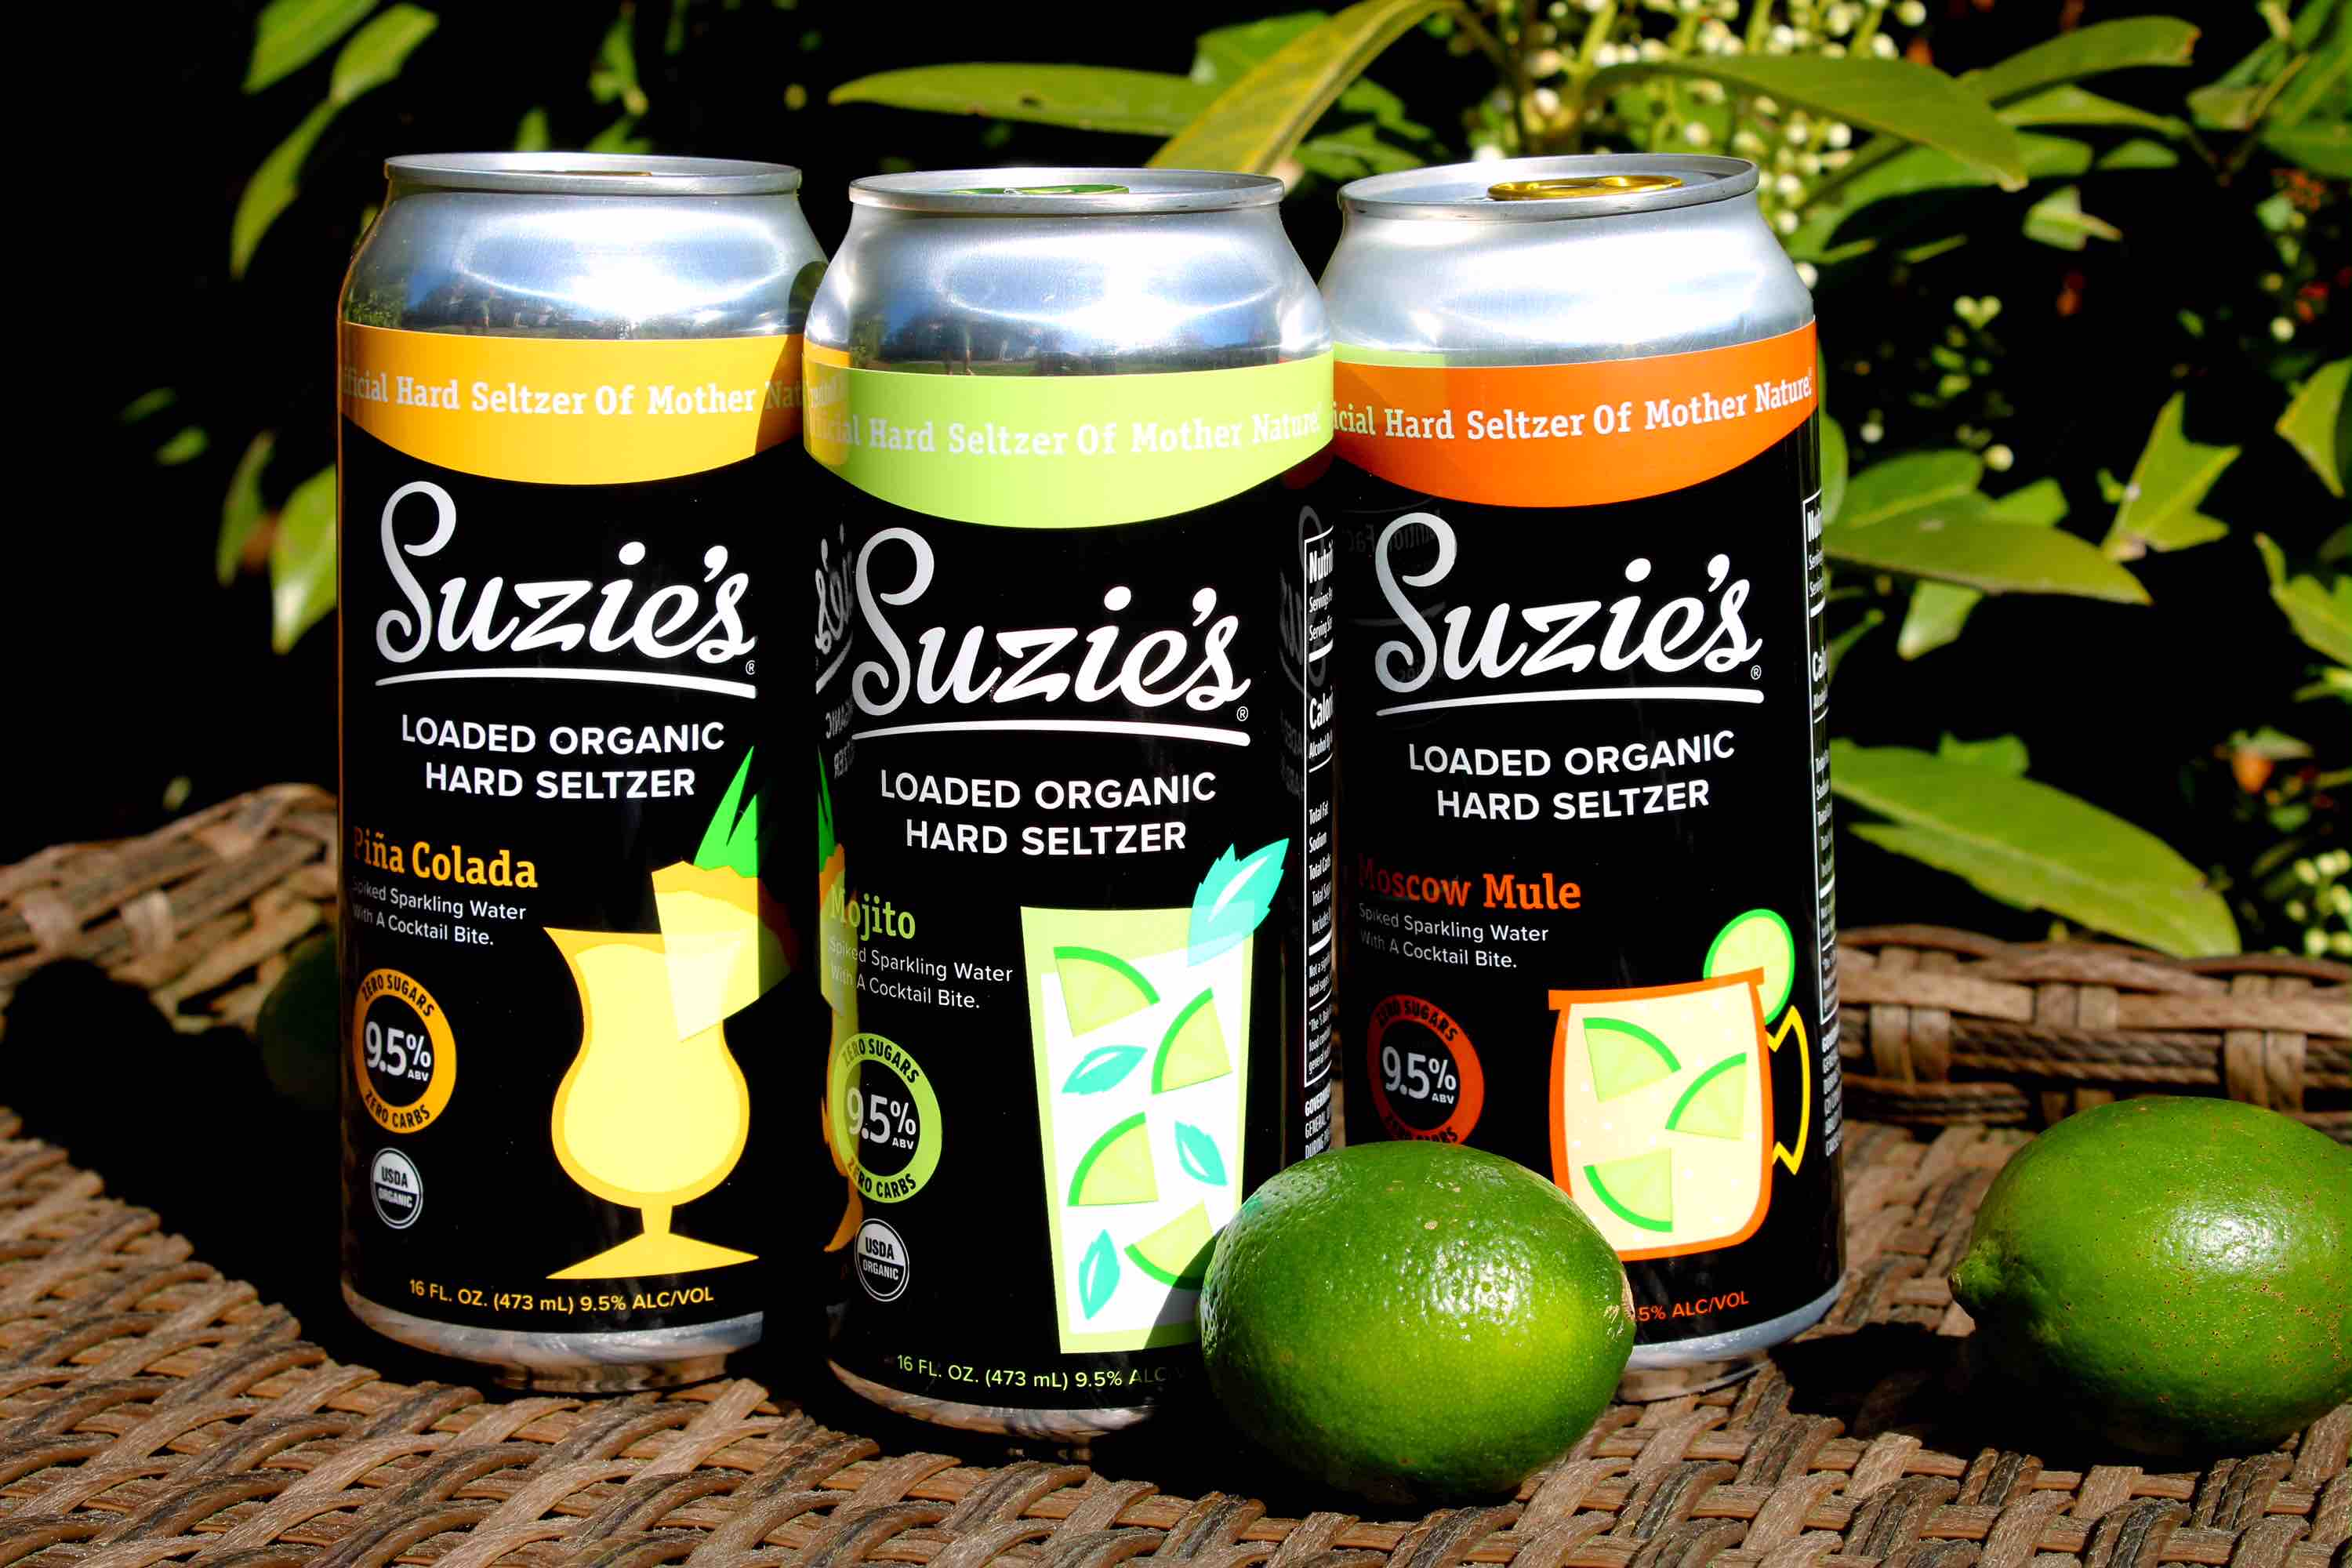 Suzie's Brewery Expands with Lineup of Loaded Organic Hard Seltzers with three flavors - Pina Colada, Mojito, and Moscow Mule. (image courtesy of Suzie's Brewing Co.)